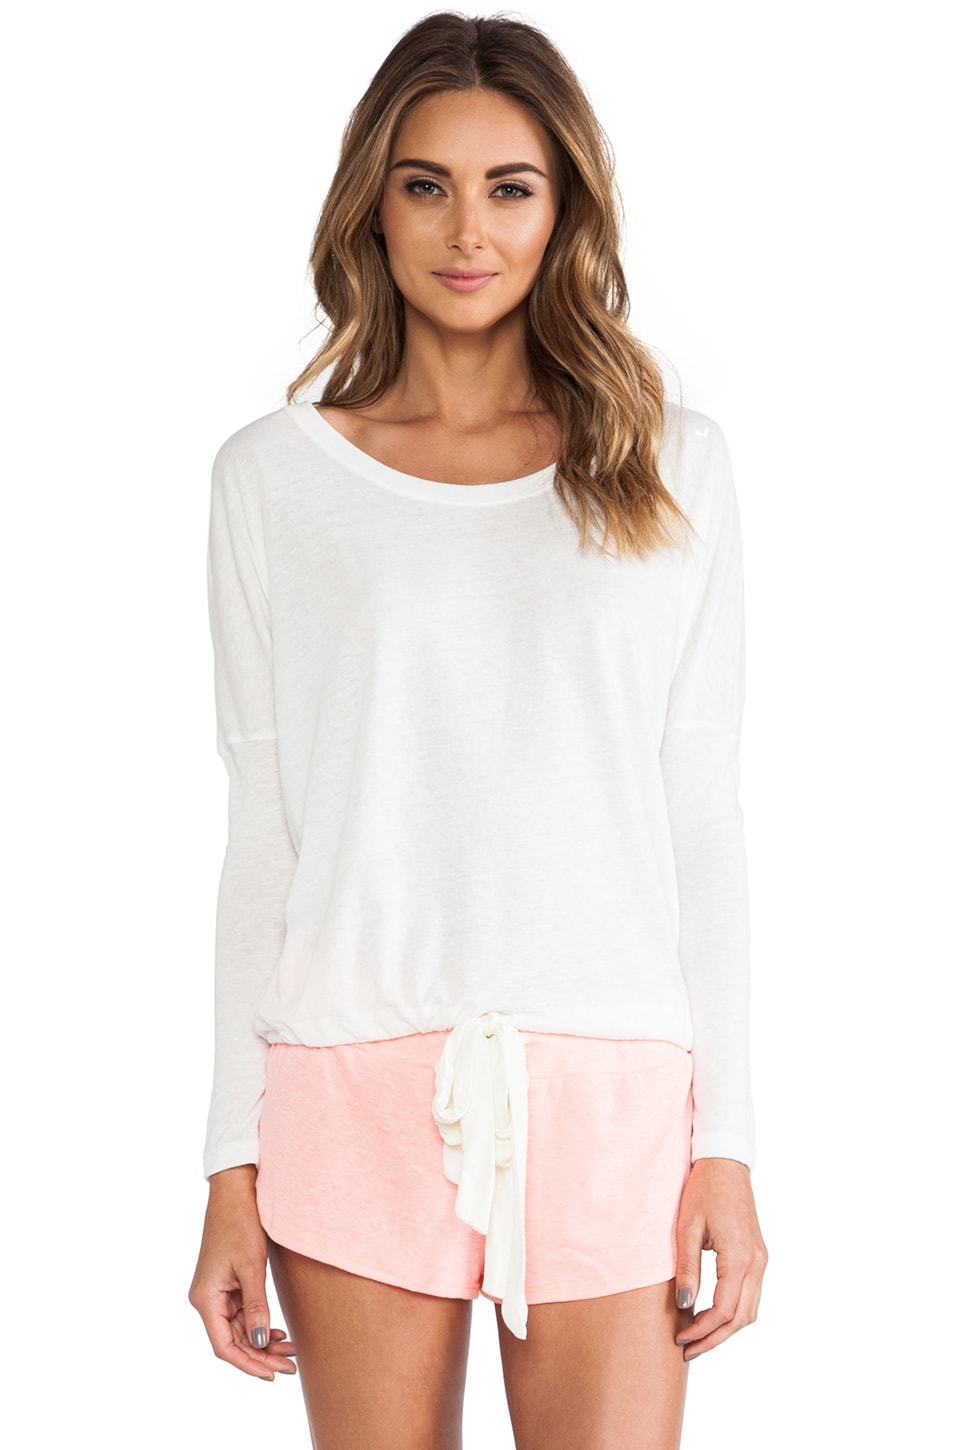 eberjey Heather Slouchy Tee in Cloud